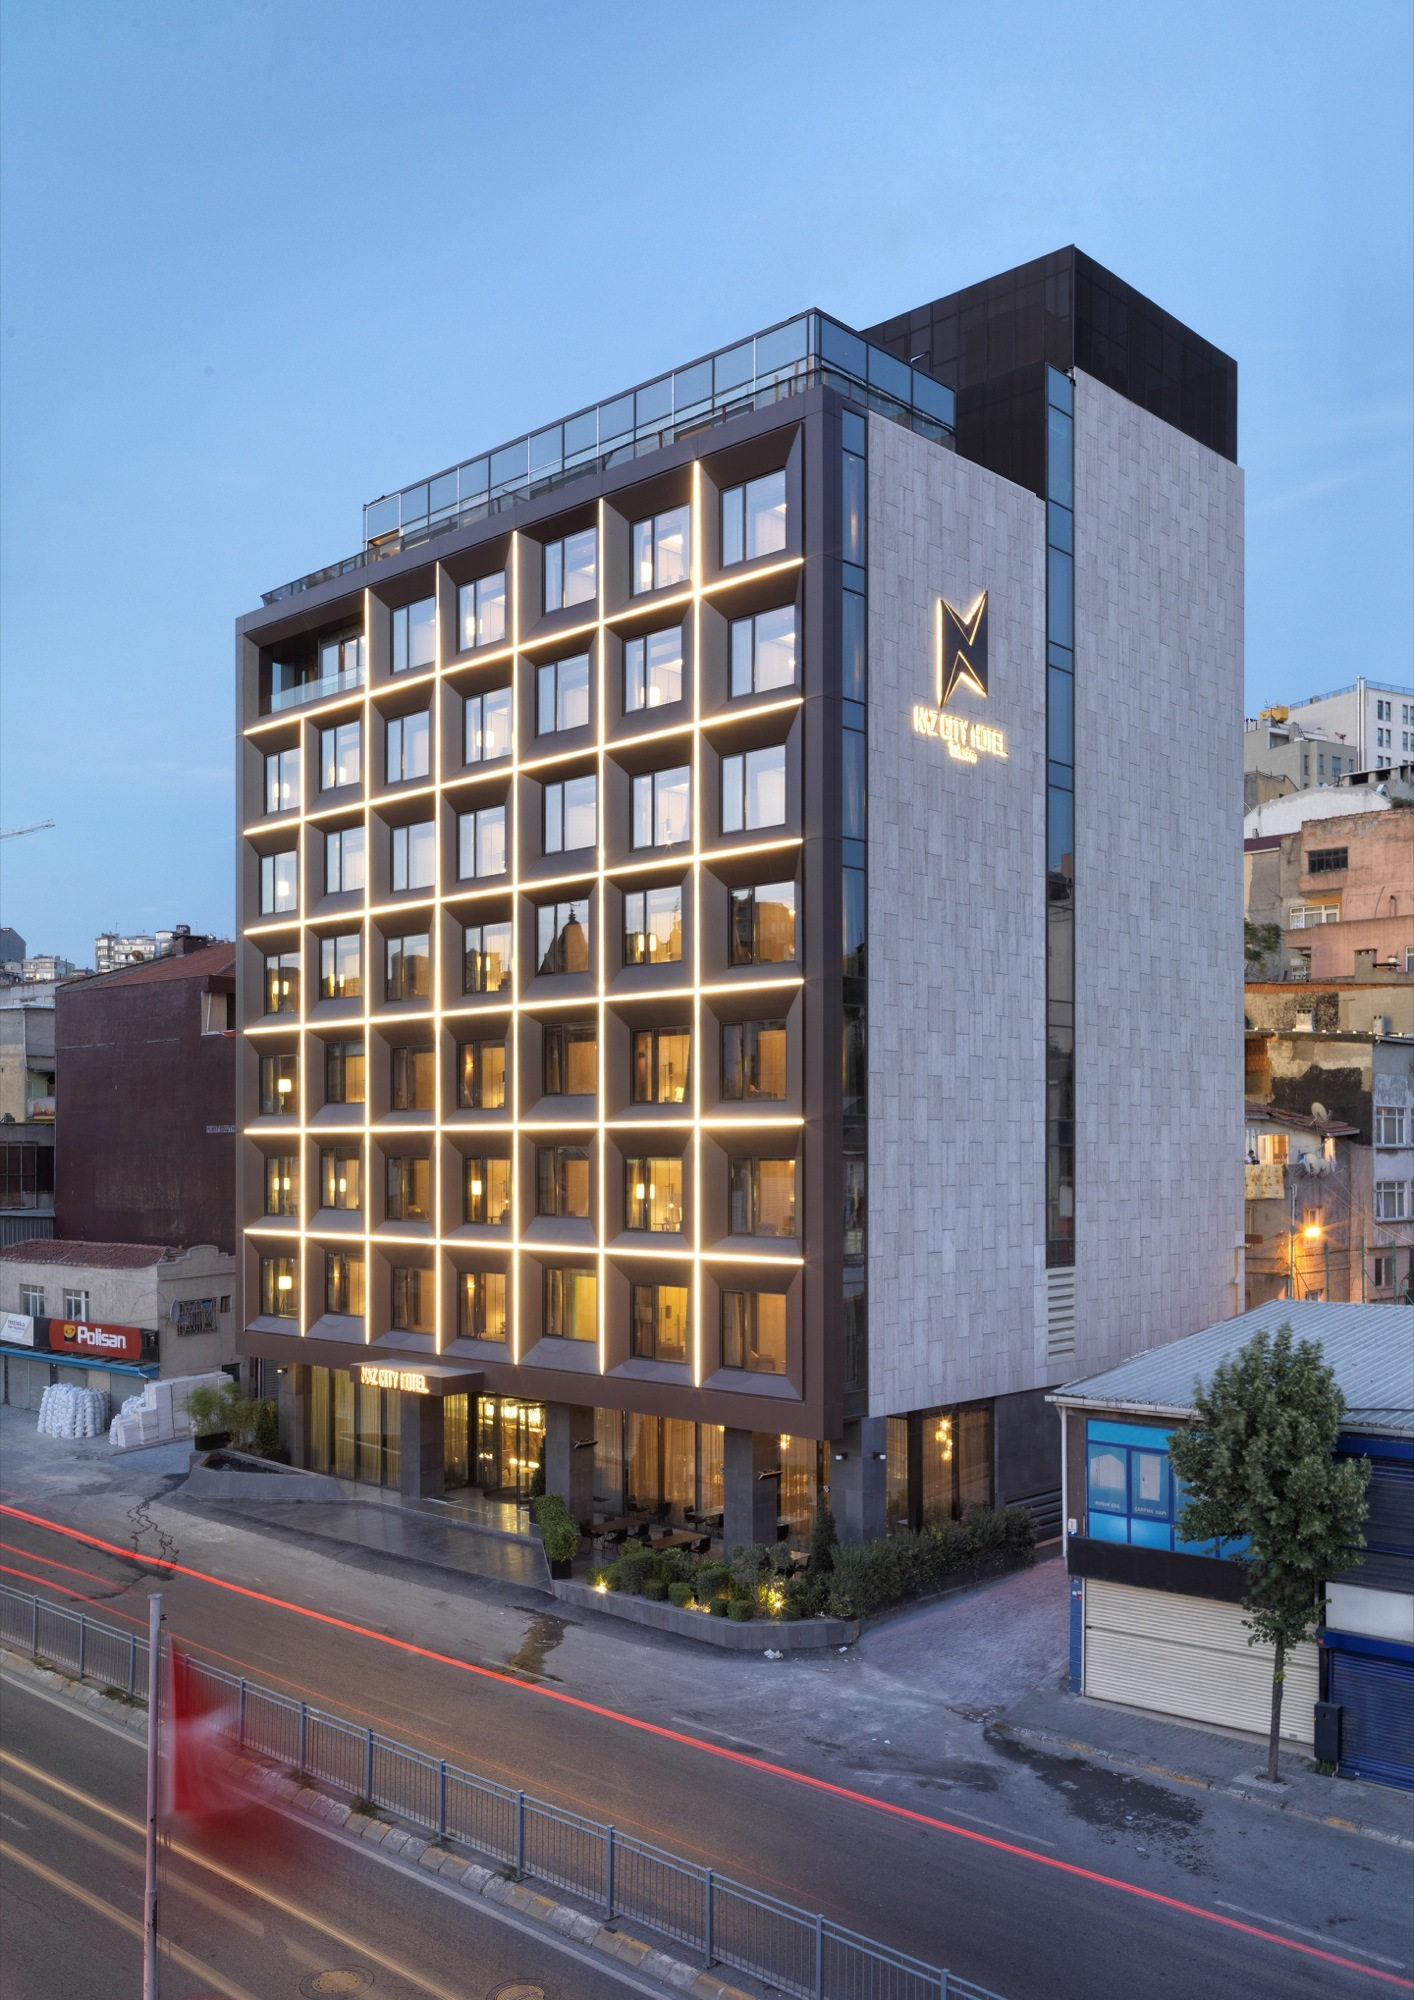 Naz city hotel taksim metex design group archdaily for Designhotel istanbul